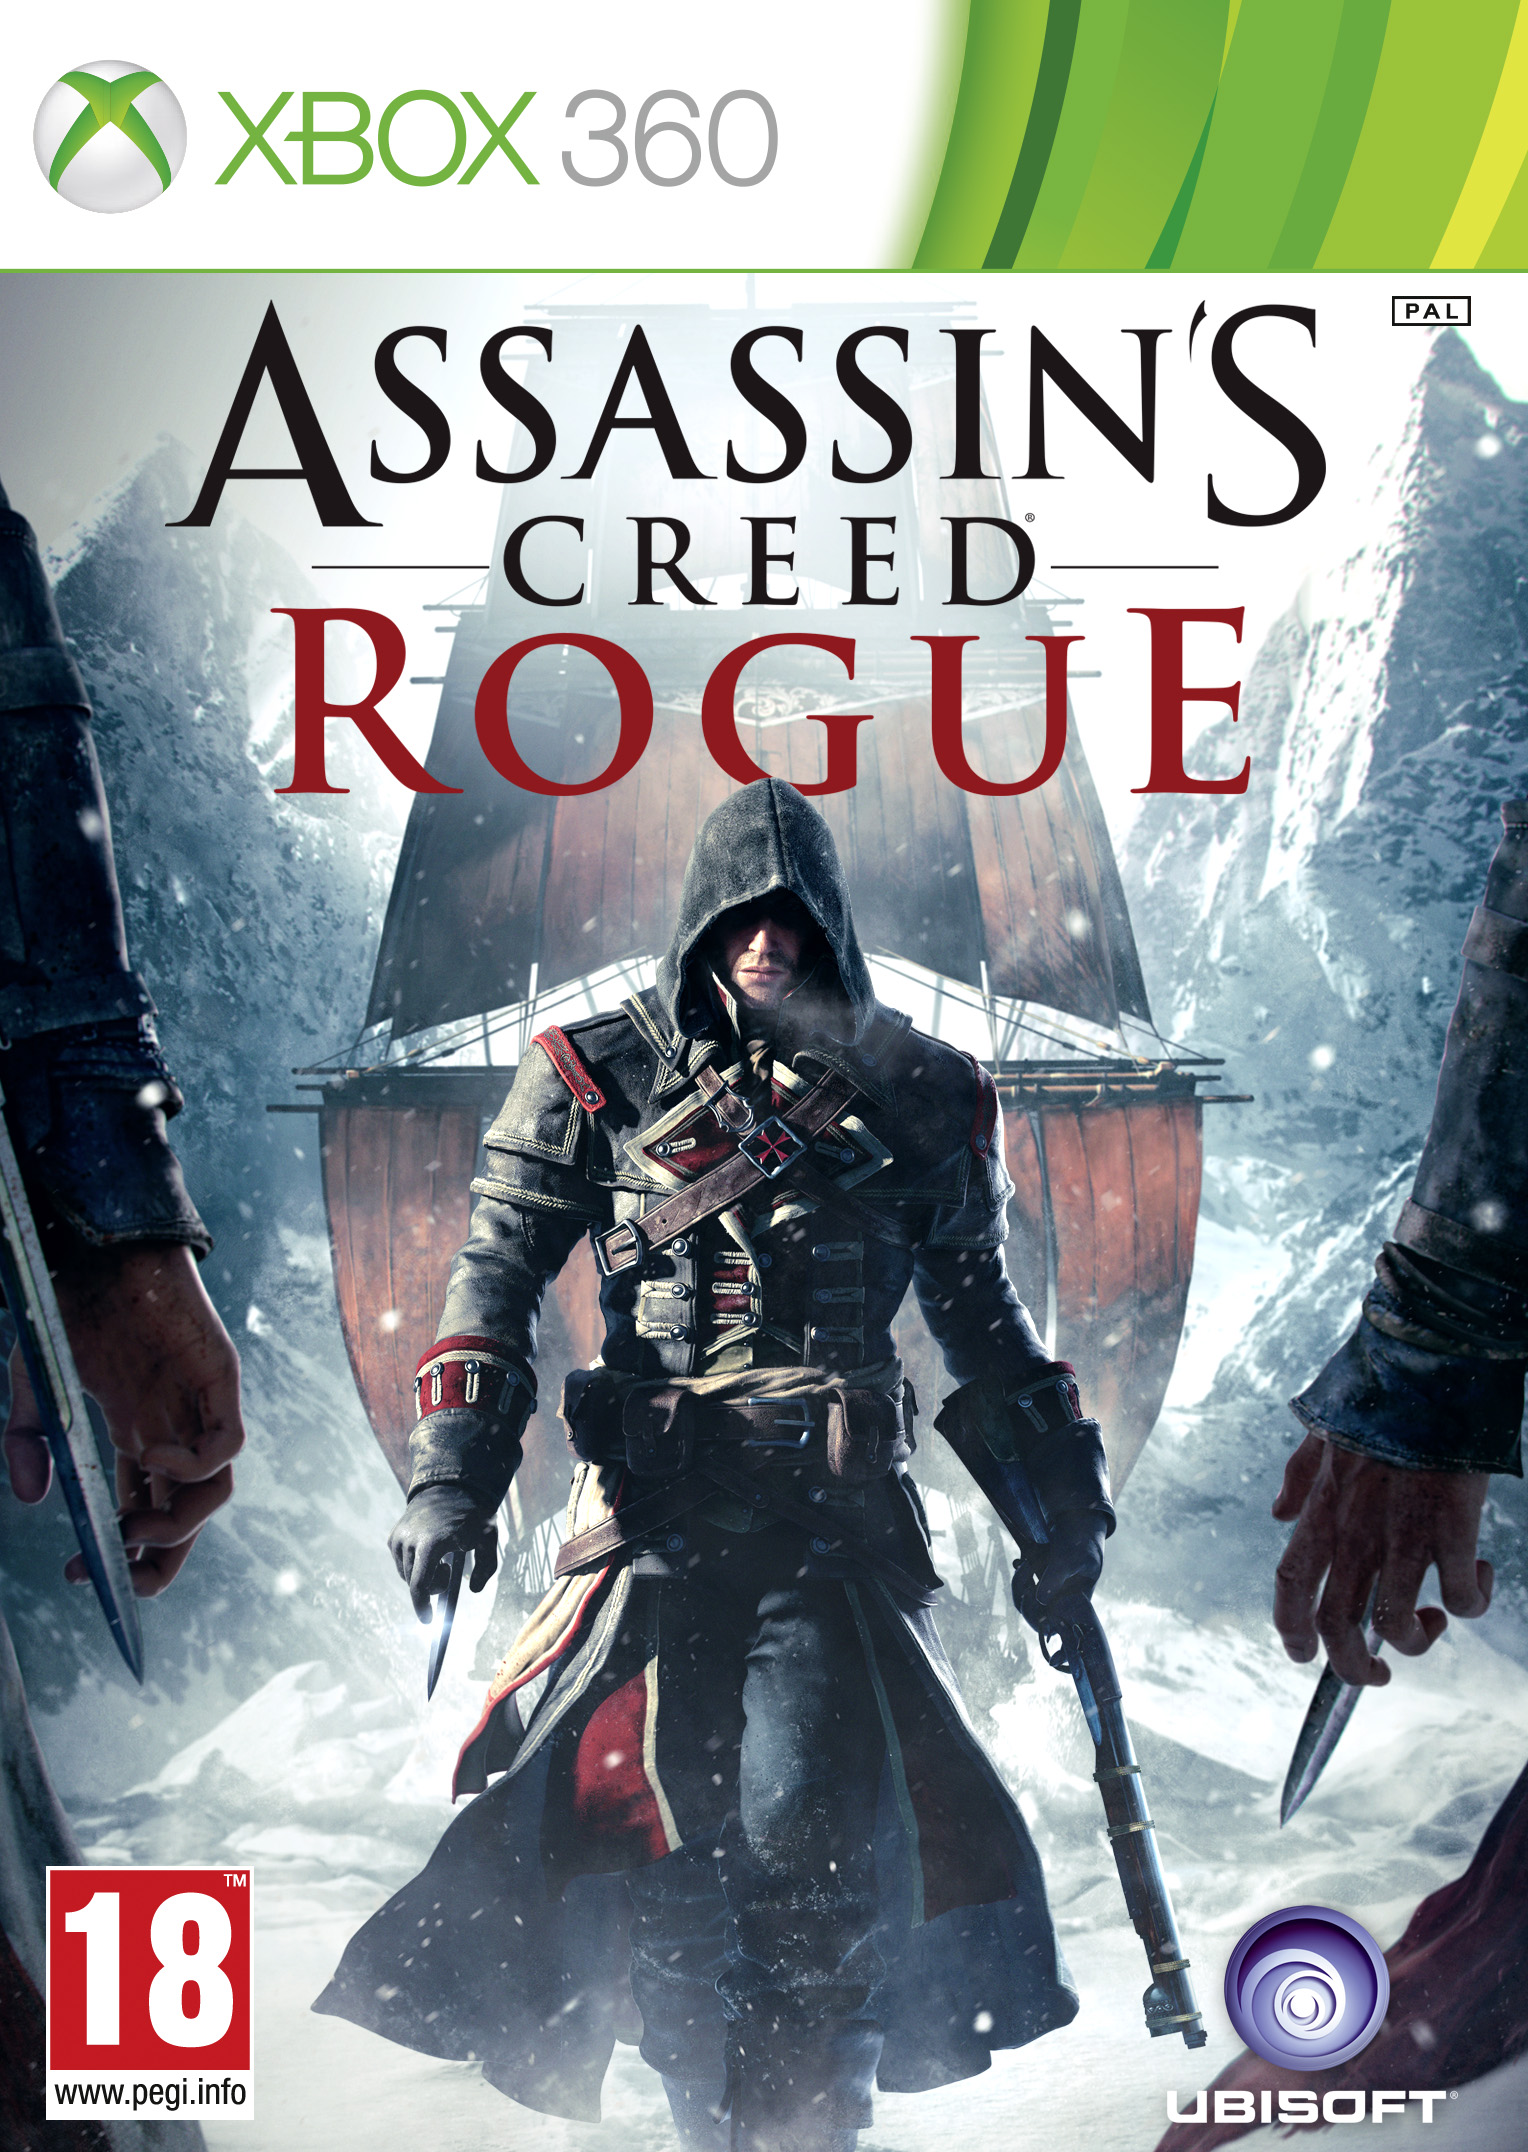 http://rozup.ir/up/narsis3/Pictures/Assassins-Creed-Rogue-xbox360-cover-large.jpg